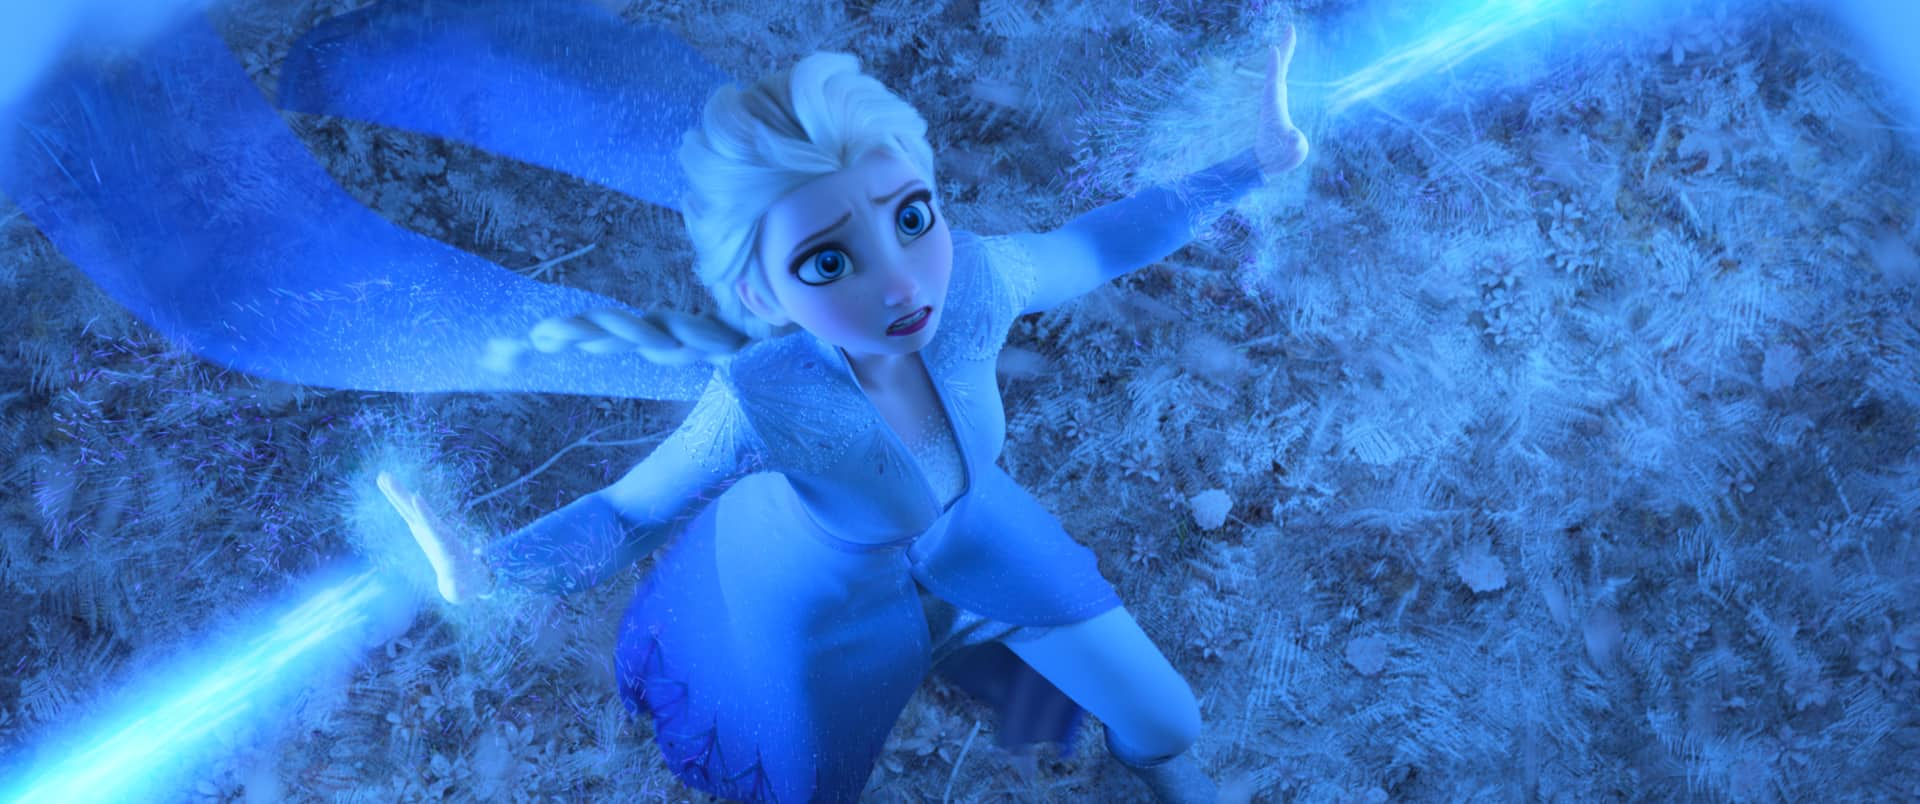 Frozen 2 Goes Straight To Number 1